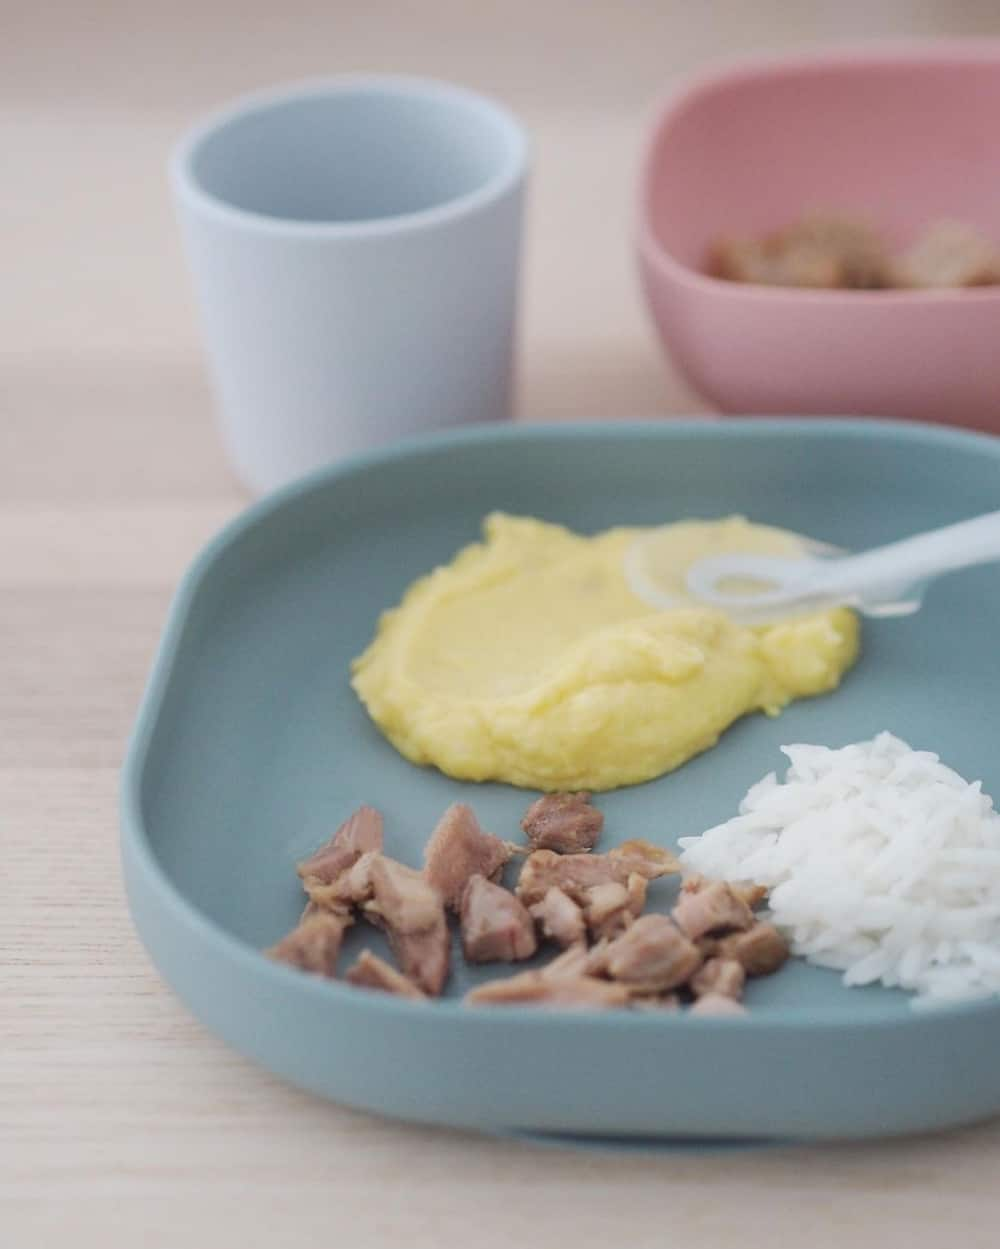 Beaba Silicone Meal Set in Eucalyptus with eggs